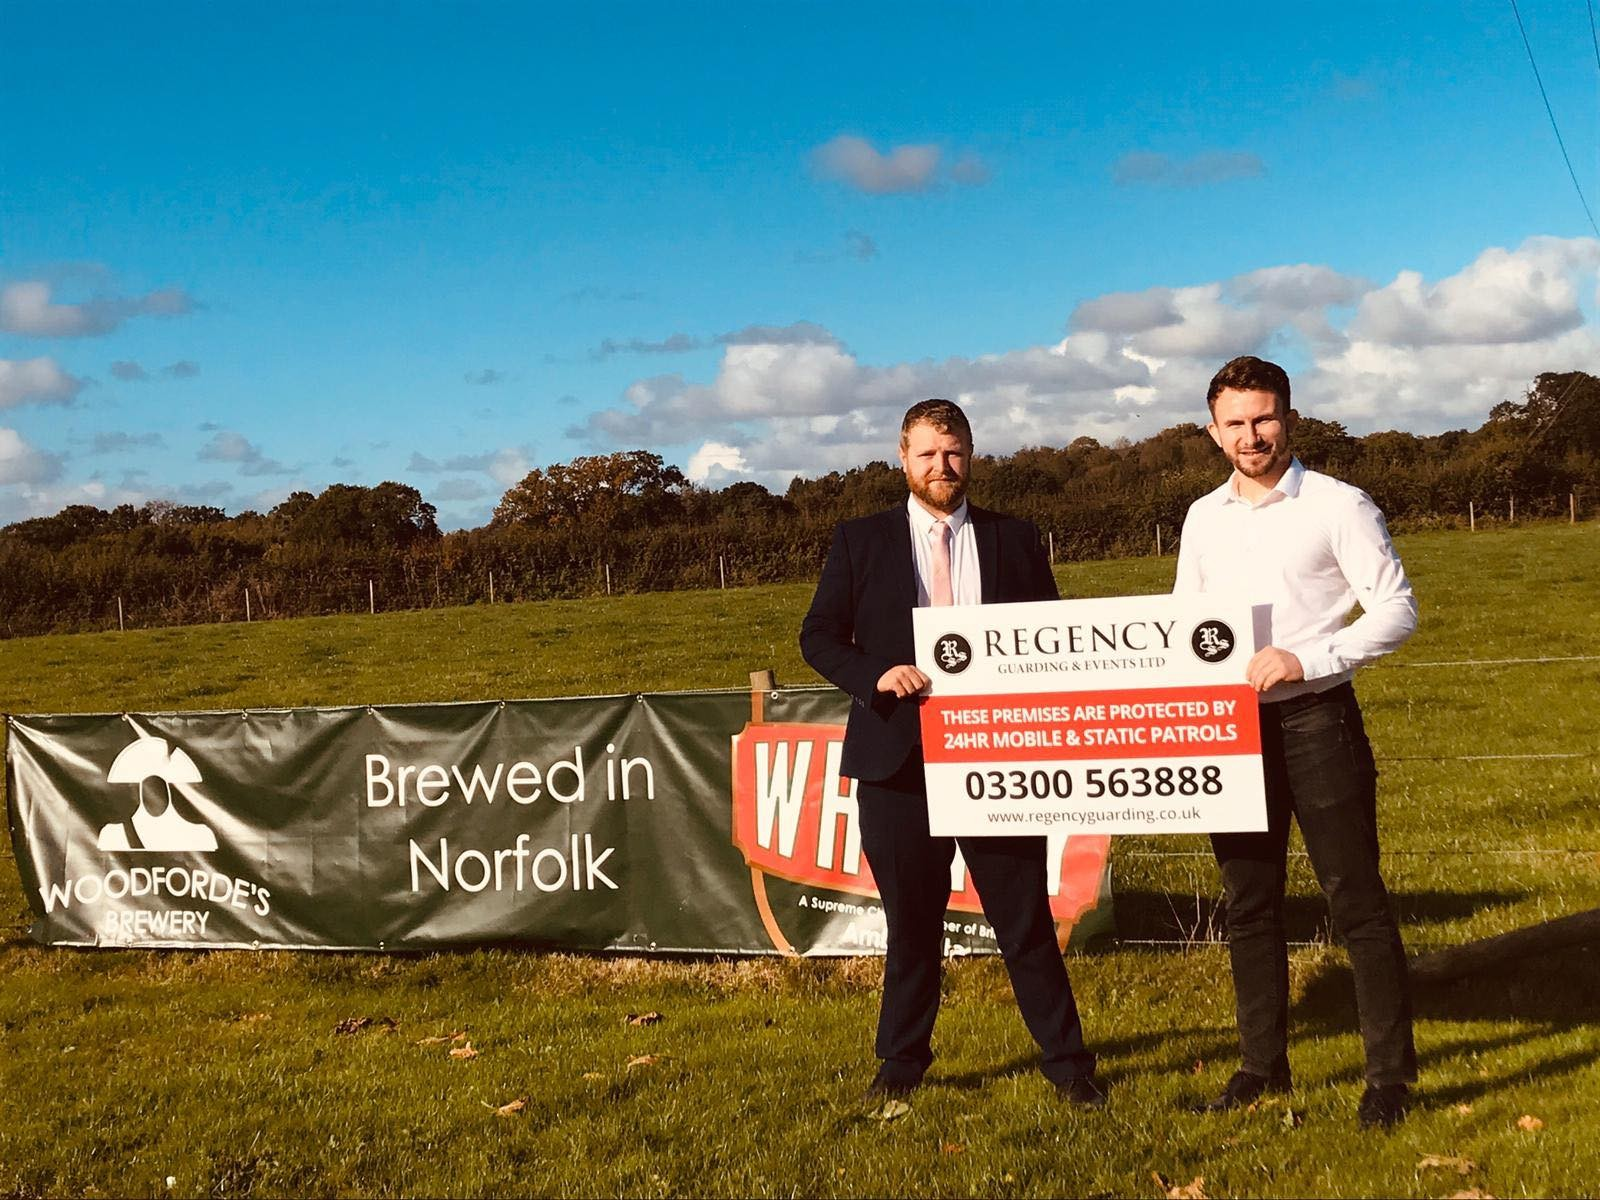 Woodforde's Brewery Appoints Regency Guarding and Events thumbnail 1